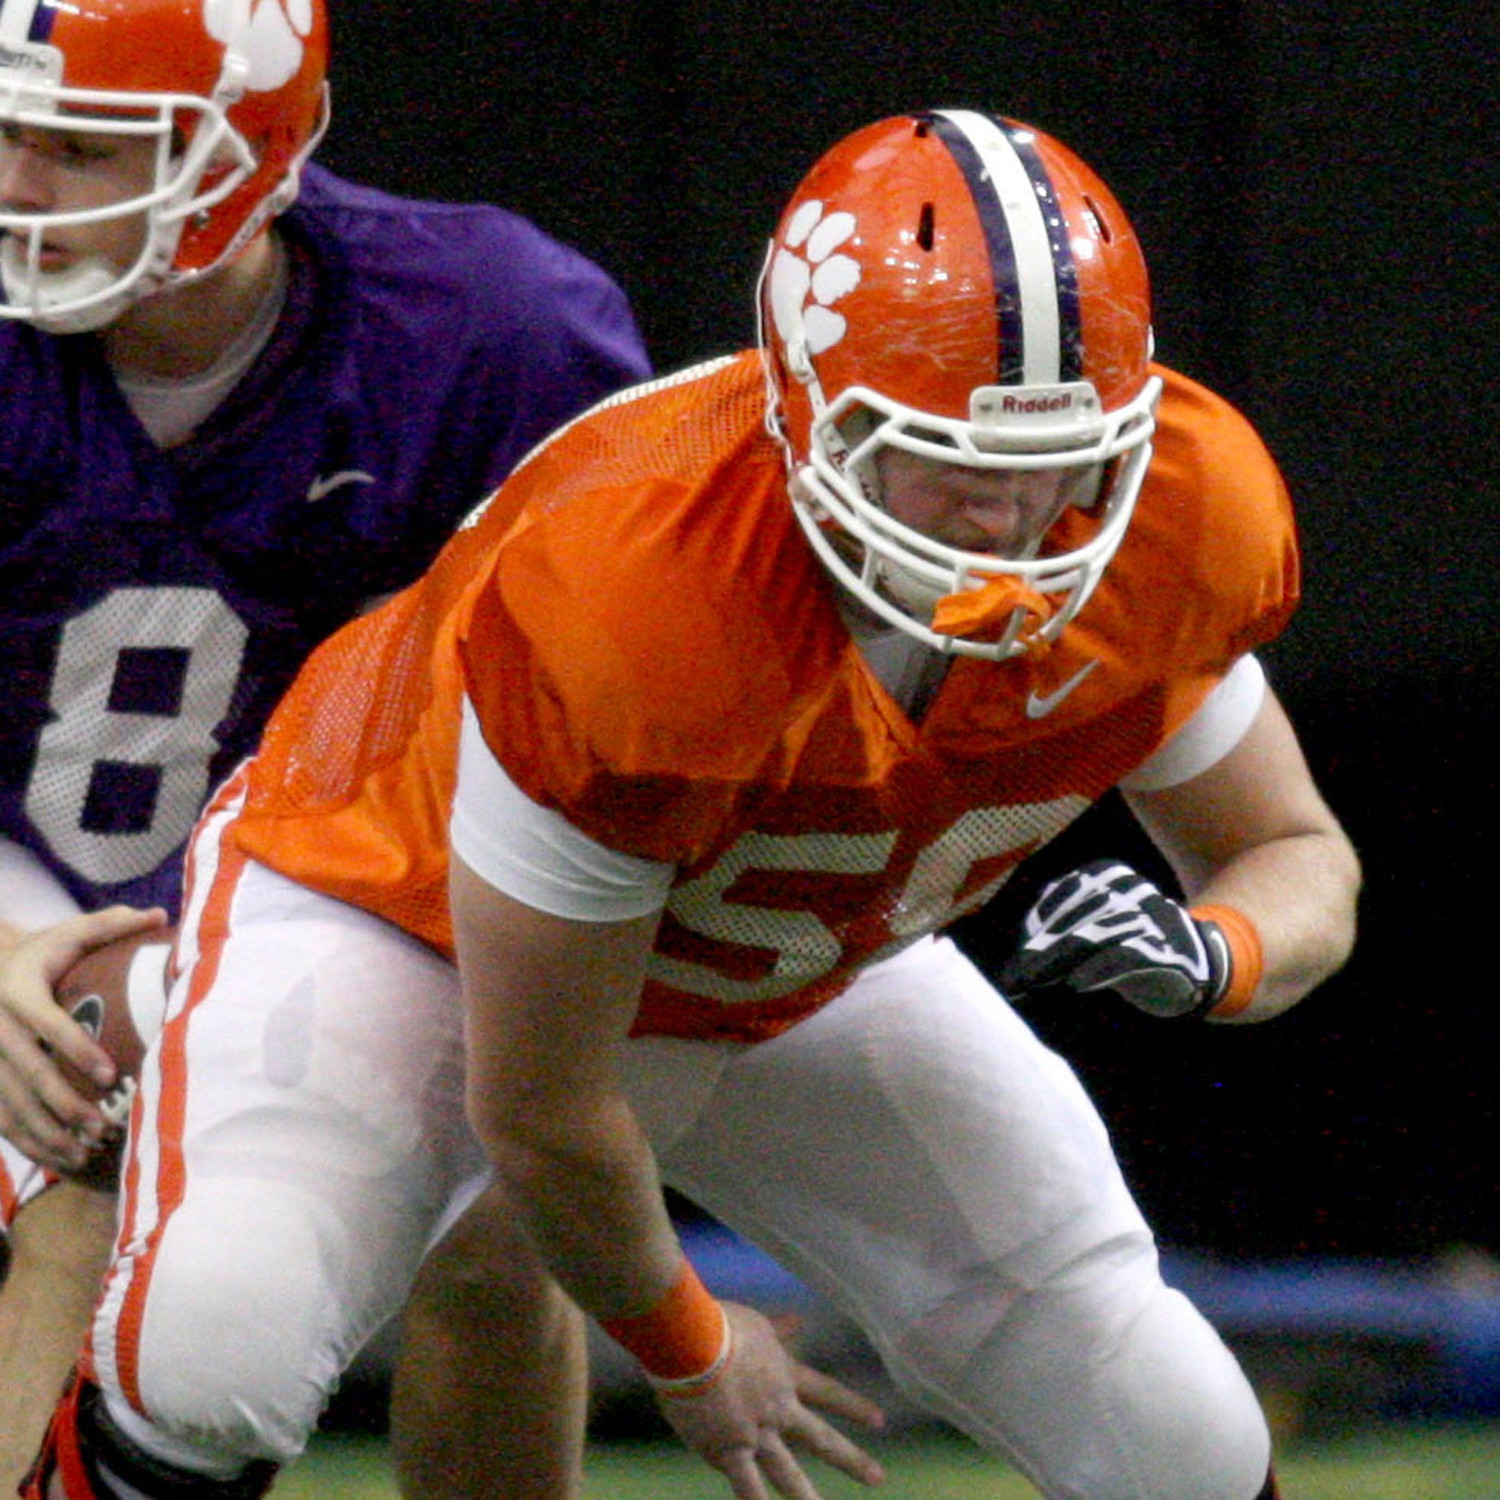 Tigers Hold Rapid Fire Practice